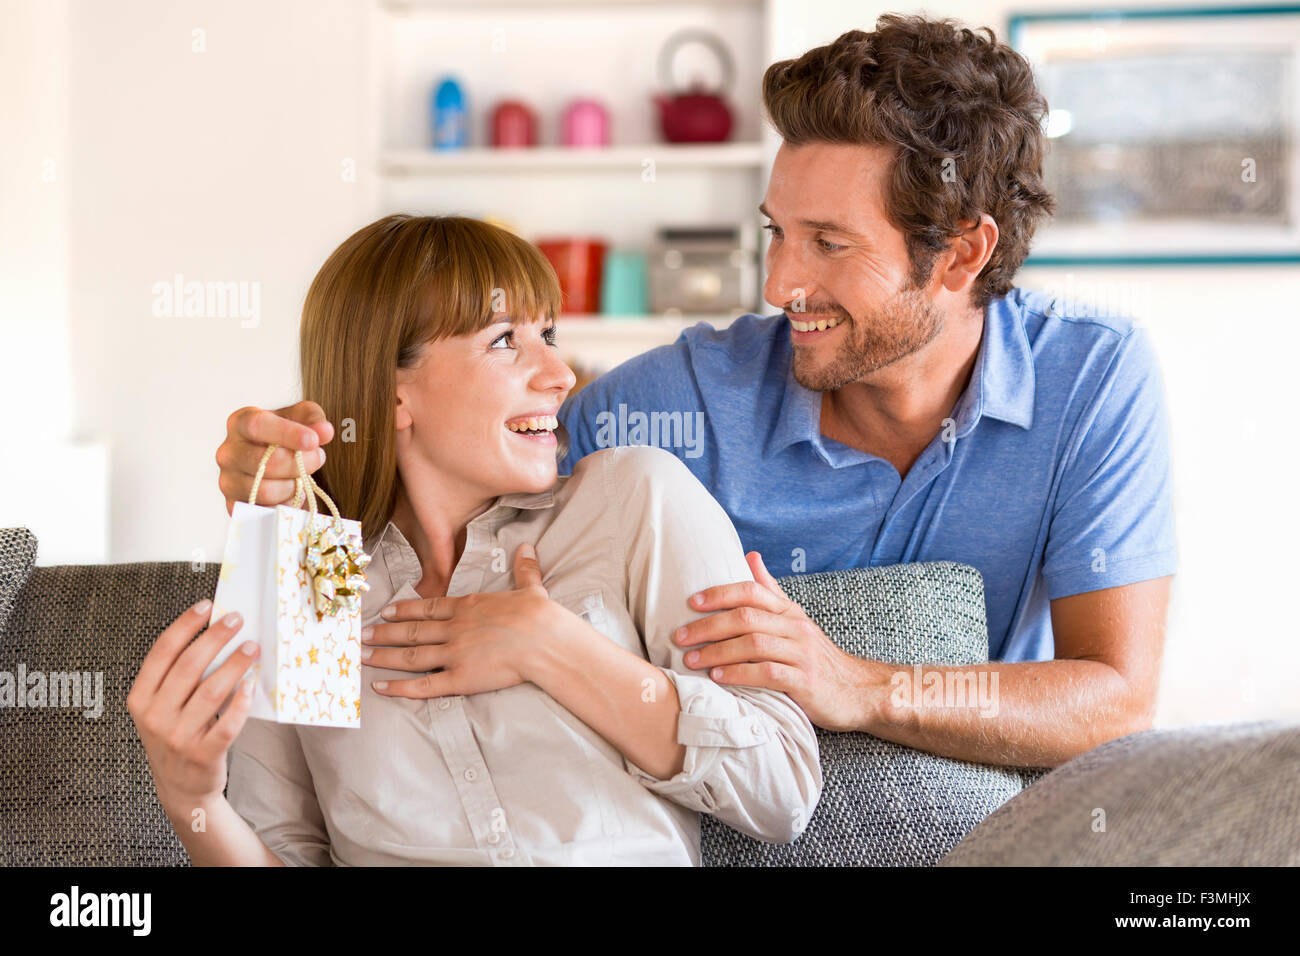 Man offering a gift to his wife for Valentine's Day. Gift, sofa, home, girlfriend, couple - Stock Image